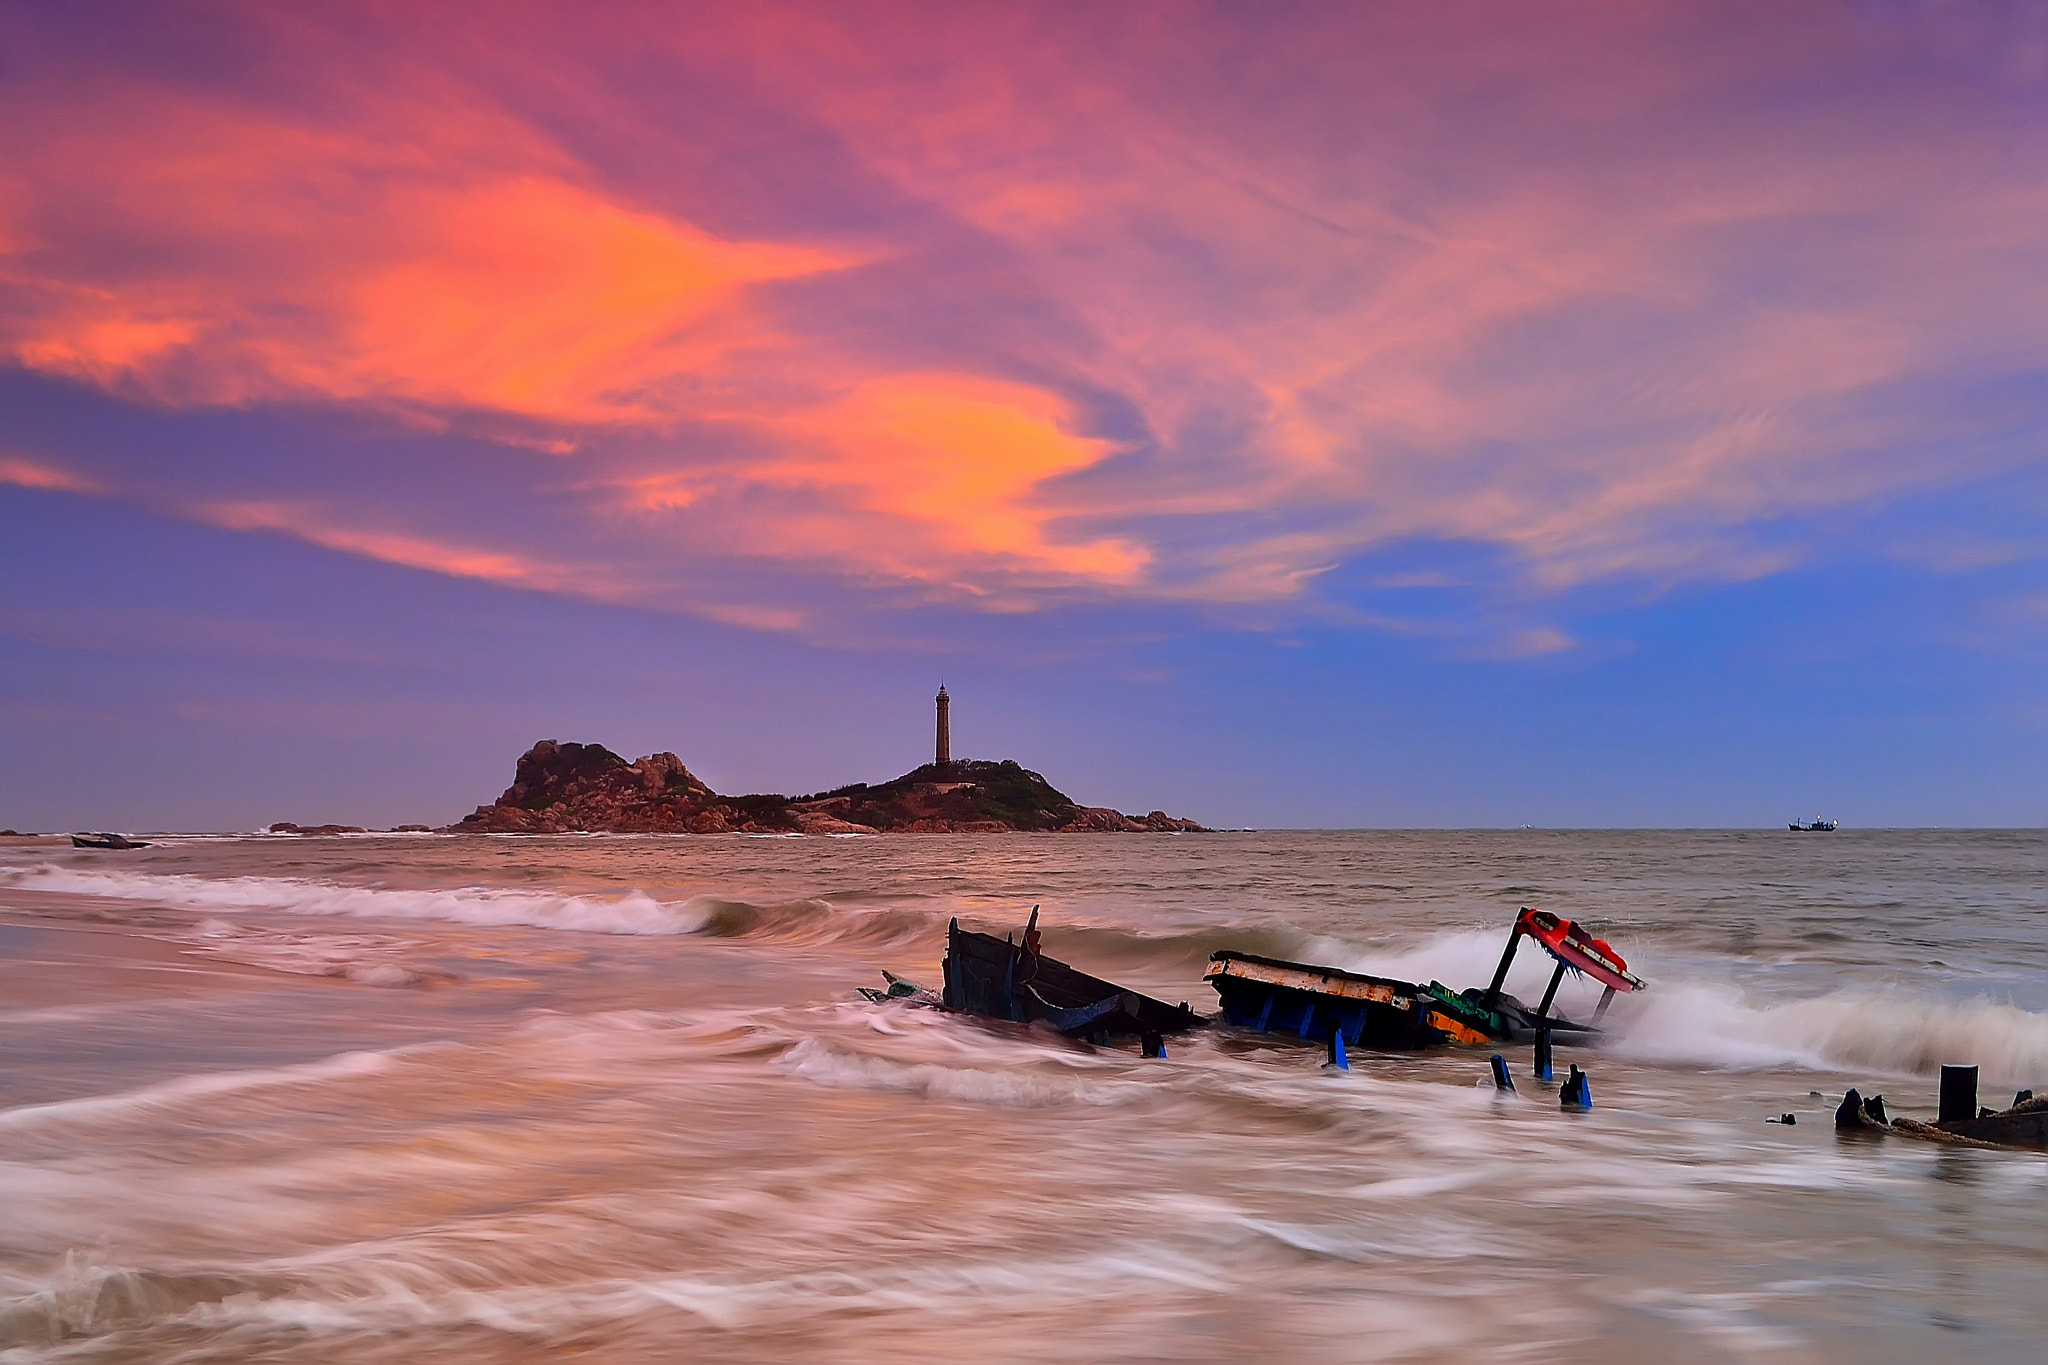 Photograph Lighthouse in sunset by Duc Vien on 500px